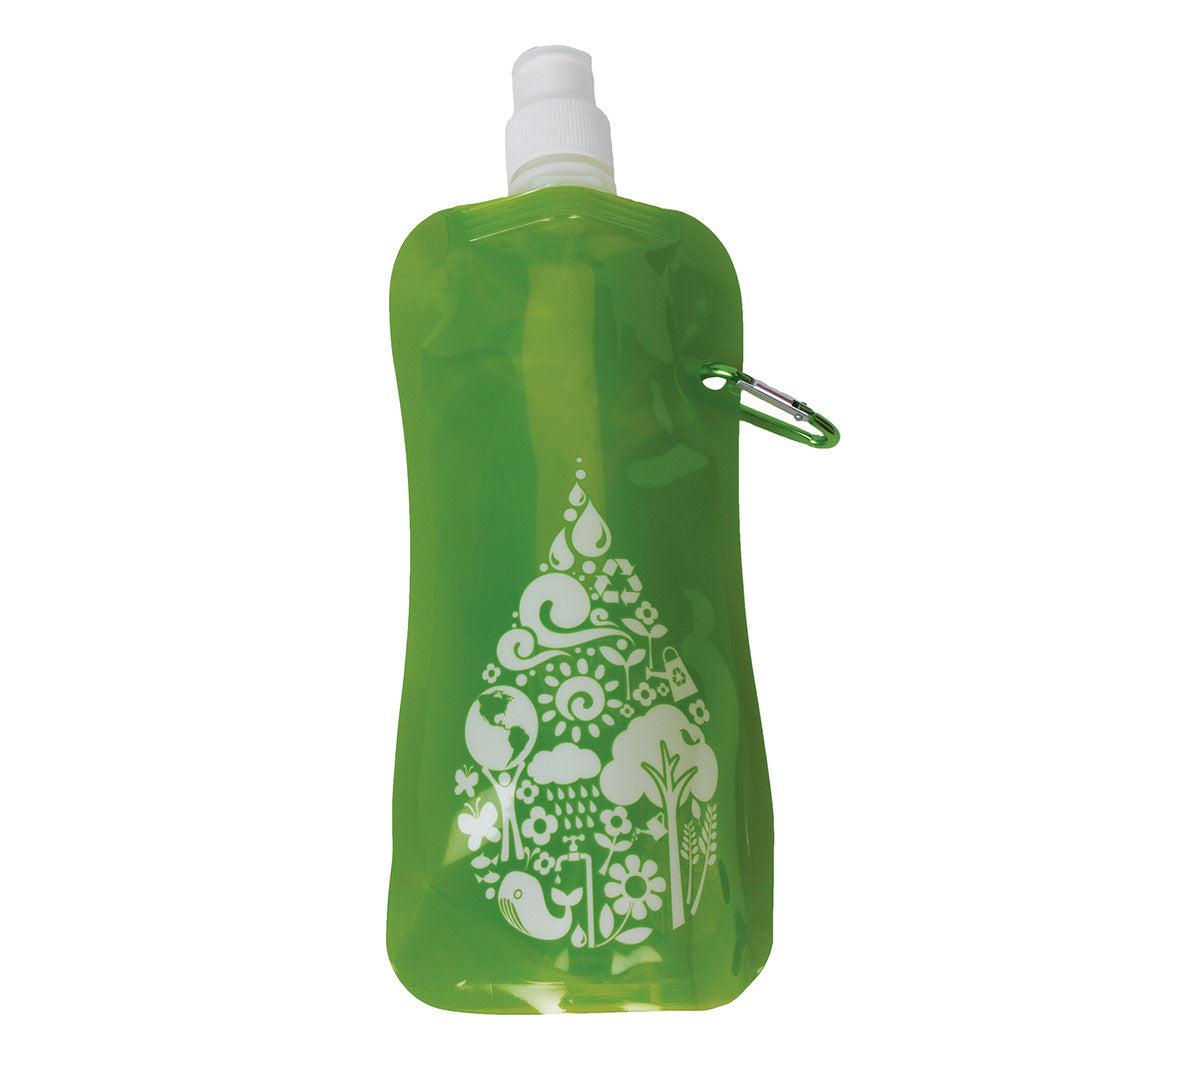 Fresh Baby's Collapsible Eco-friendly Water Bottle makes carrying a reusable water bottle easy and convenient. It stands tall when full and folds neatly when empty - small enough to fit in your purse, backpack or pocket.